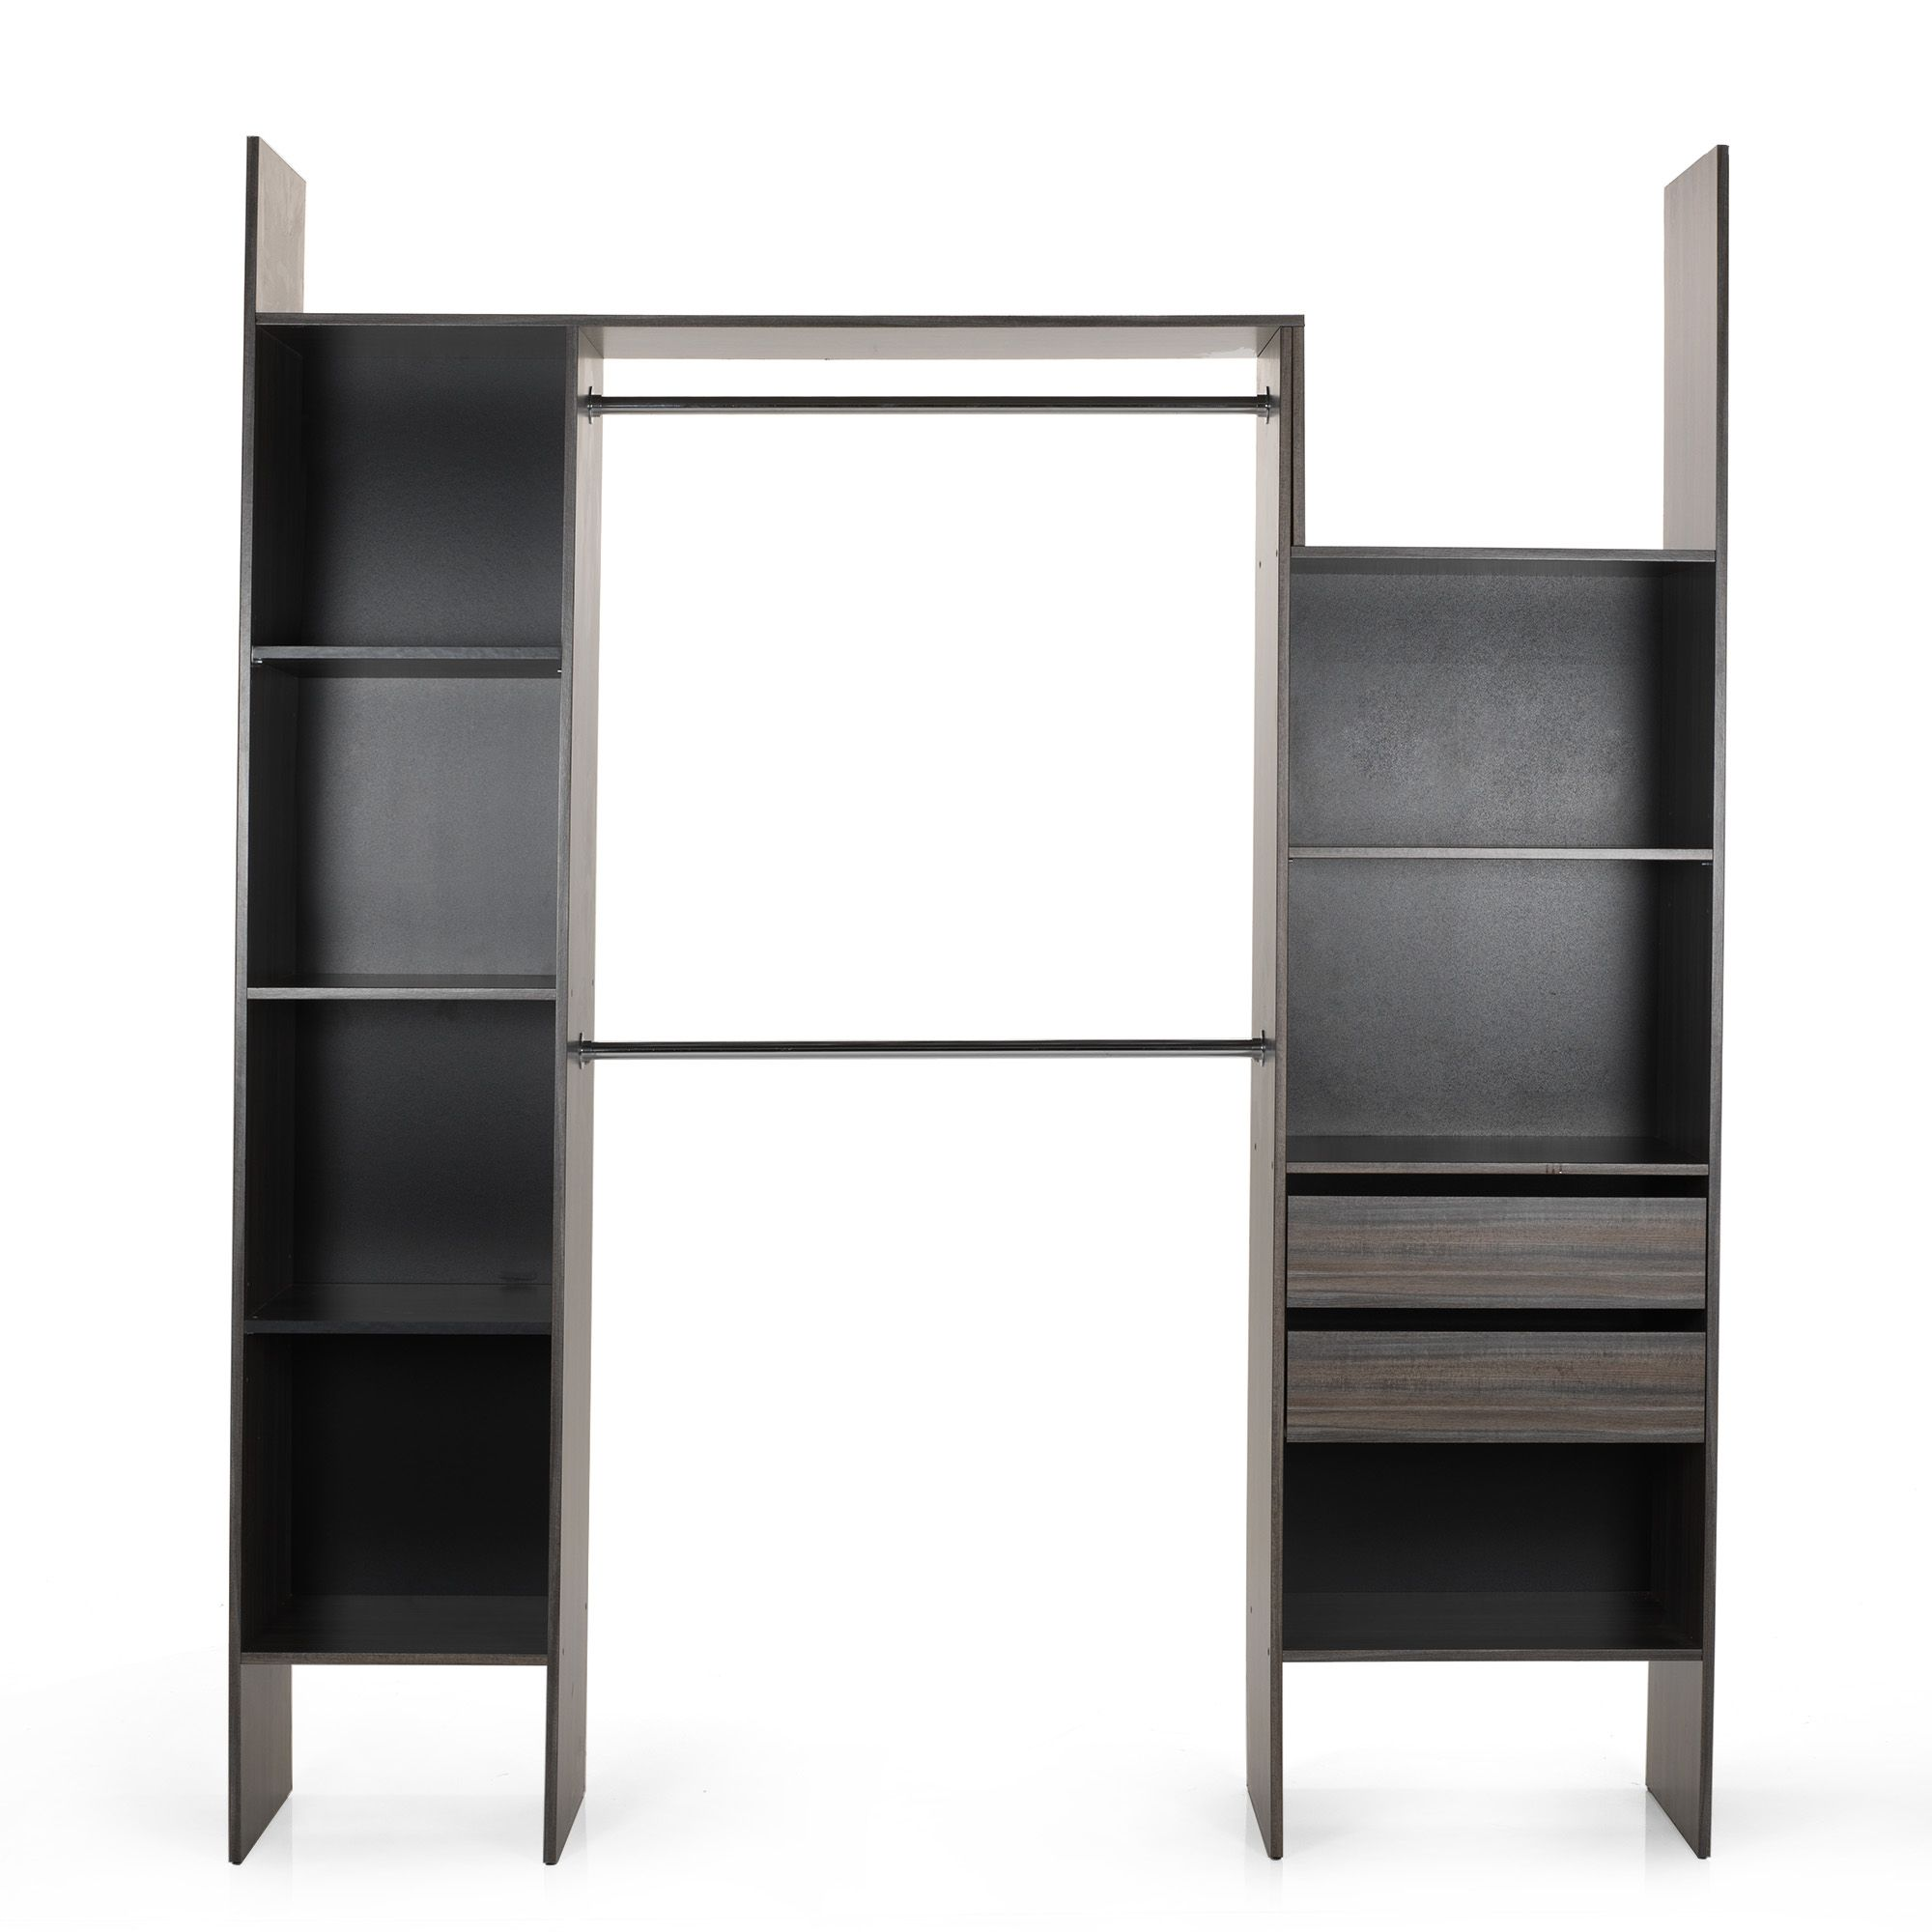 alin a modulo kit d 39 am nagement de placard extensible. Black Bedroom Furniture Sets. Home Design Ideas